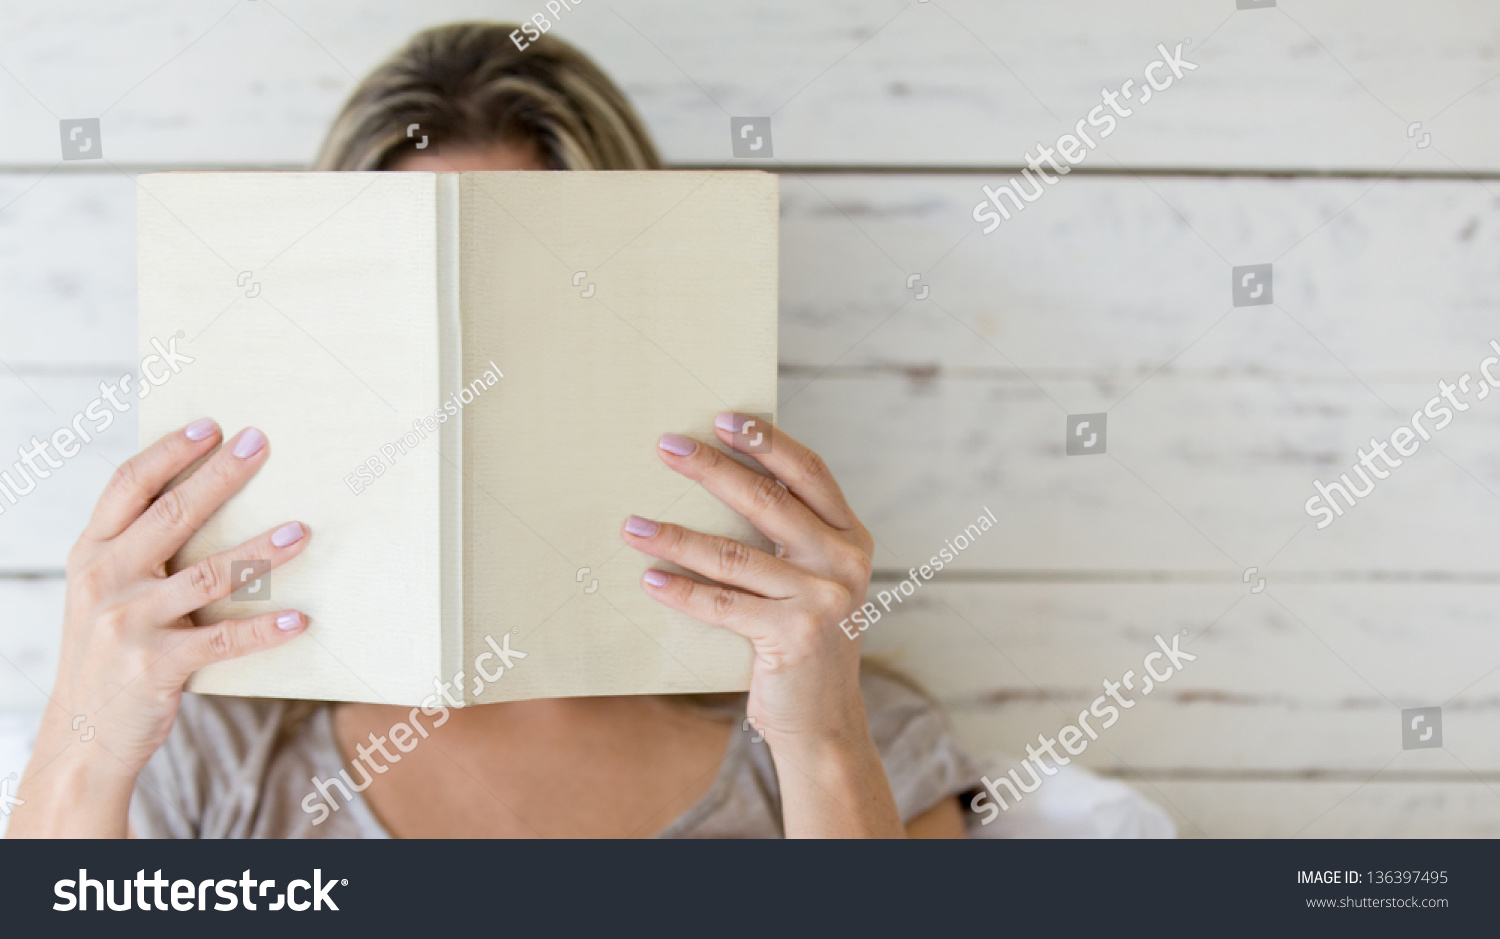 Book Covering Face : Woman reading book covering her face stock photo